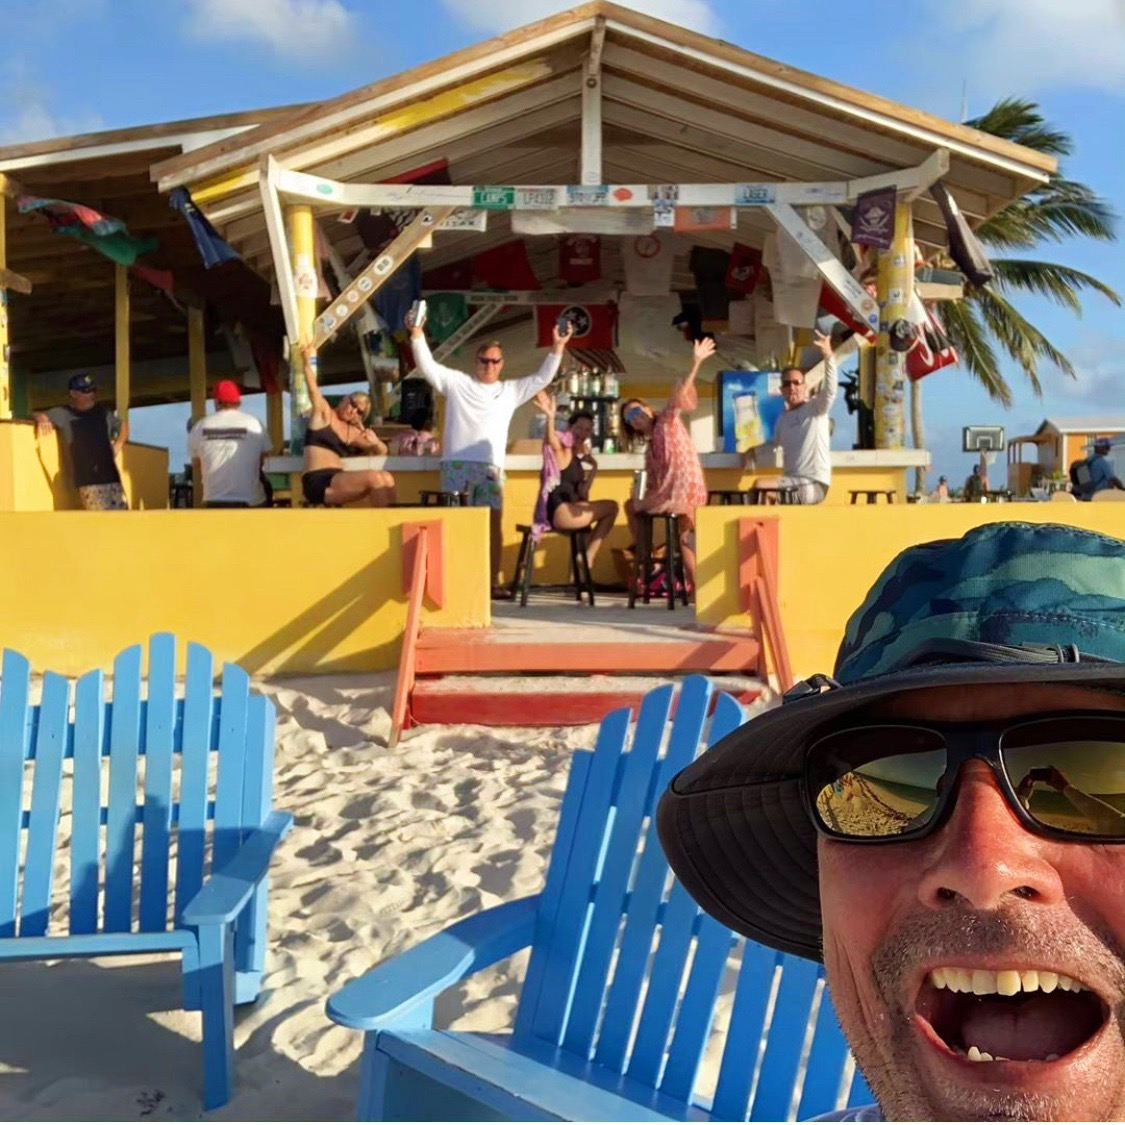 Huston Charter - a 50th birthday celebration COW WRECK BEACH, ANEGADA, MAY 2019